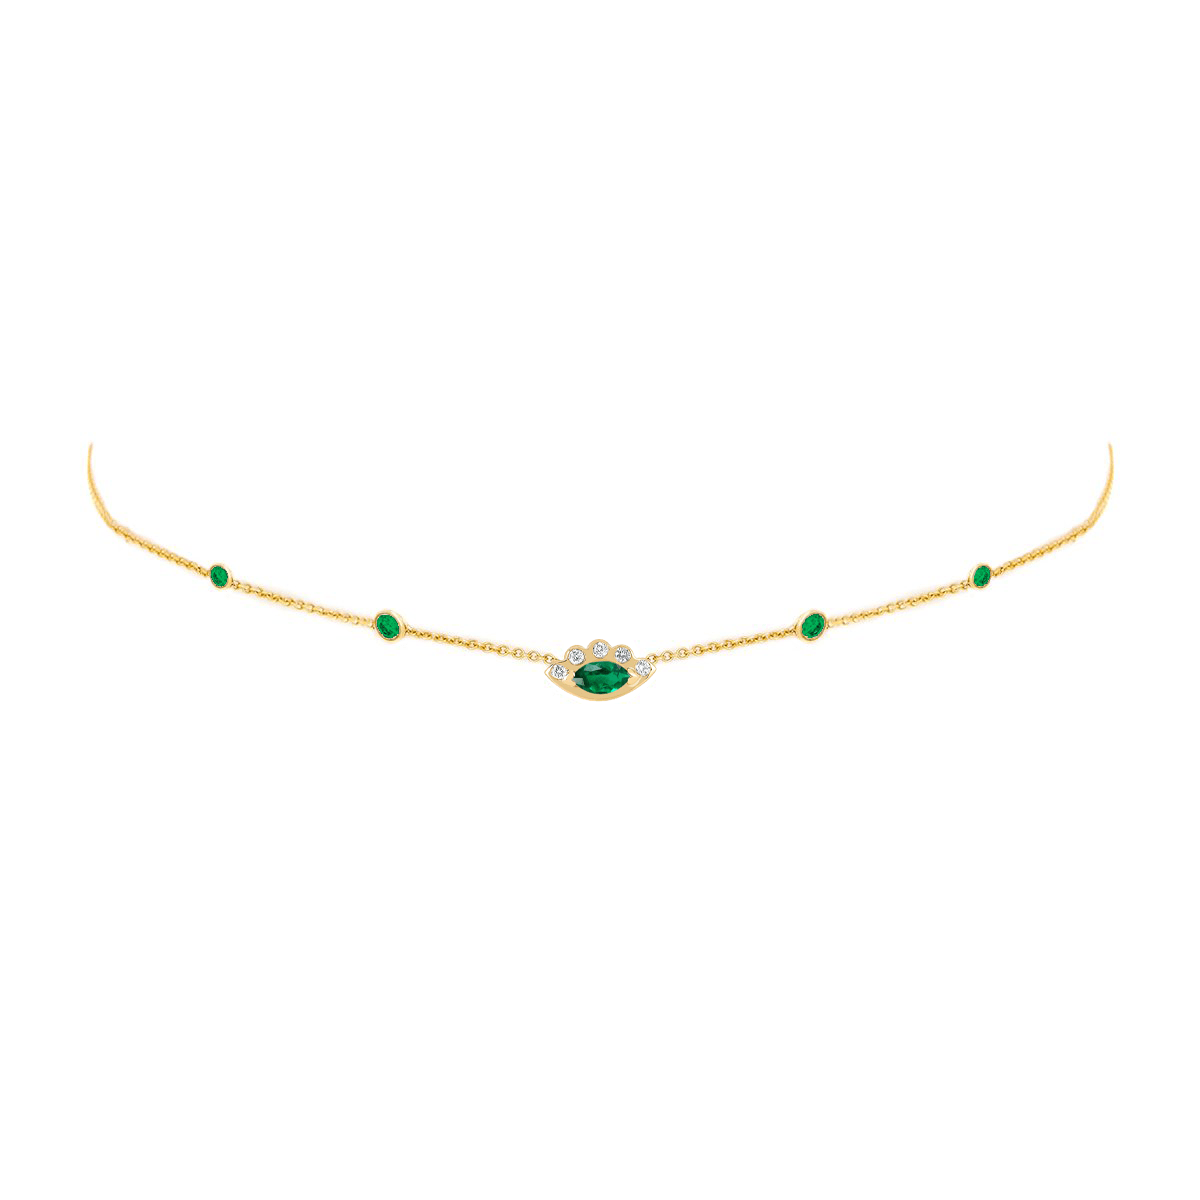 5 Emerald Orbit Bezel Choker with Angel Eye Emerald Center